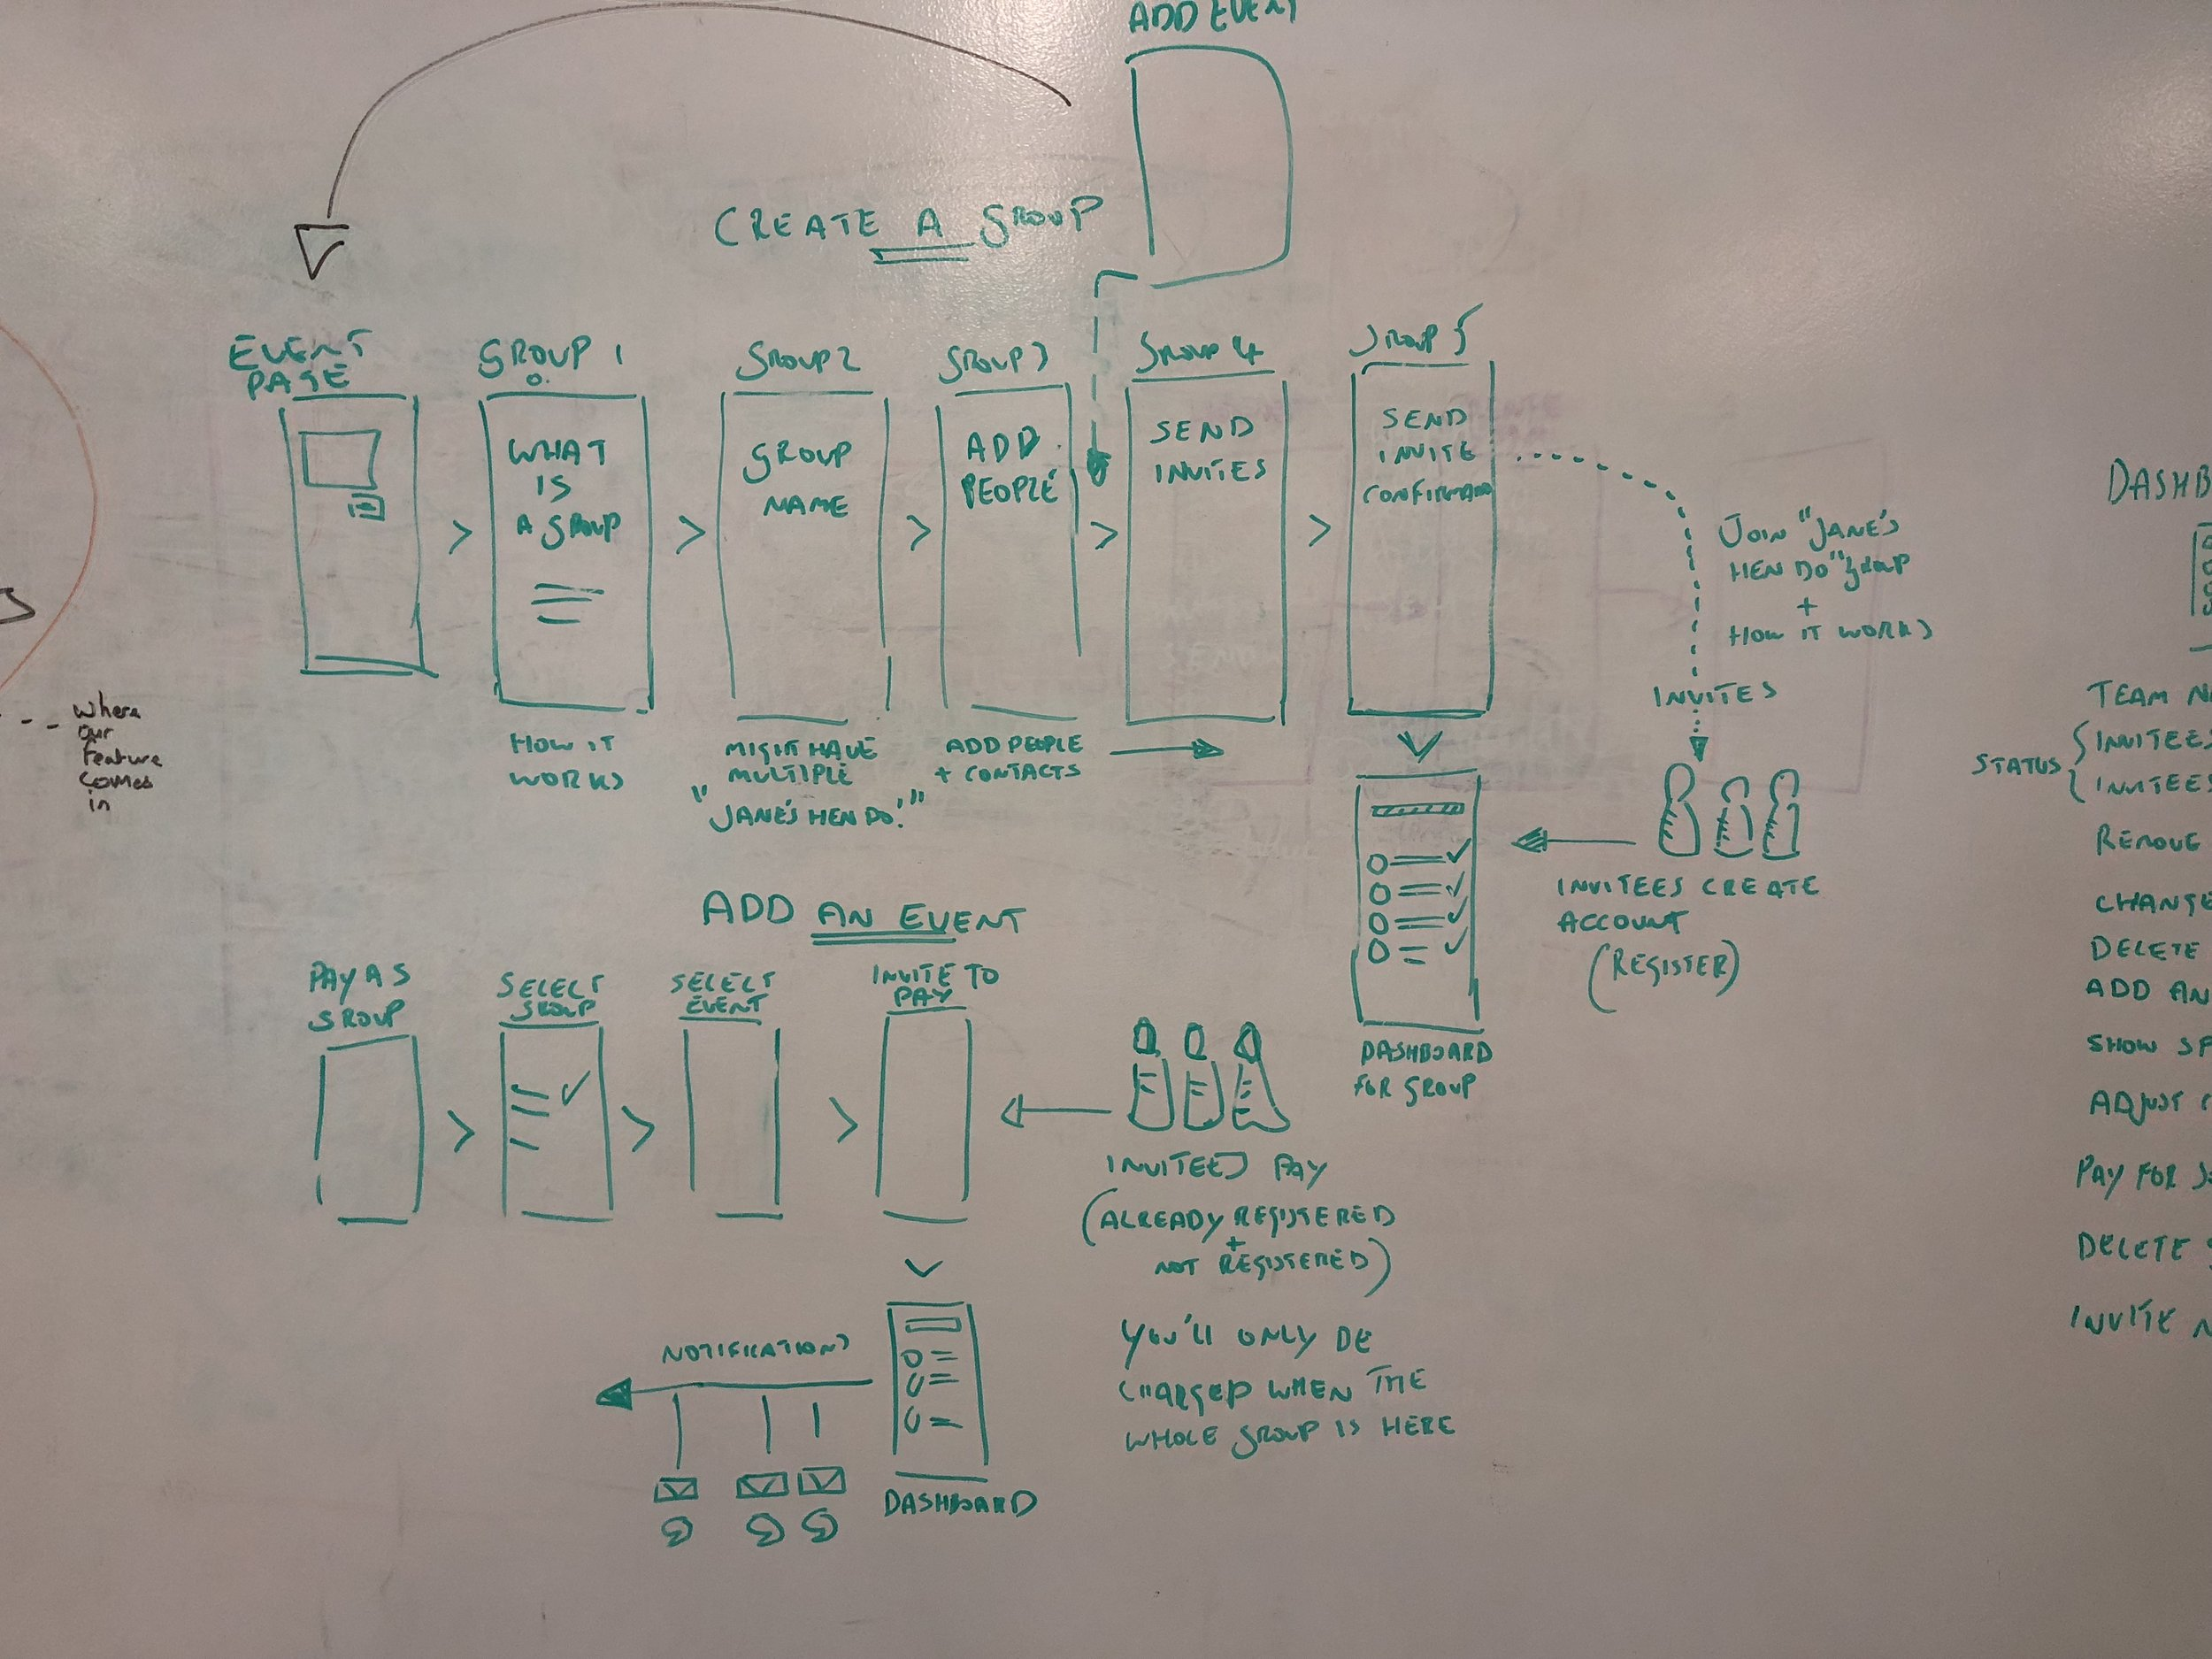 Wire flow - The wire flows are a series of rough screens that represent the user's path though the application and task completion. This ensures that all the screens needed for a paper prototype are accounted for—and in this instance that the solution integrates meaningfully with current product.